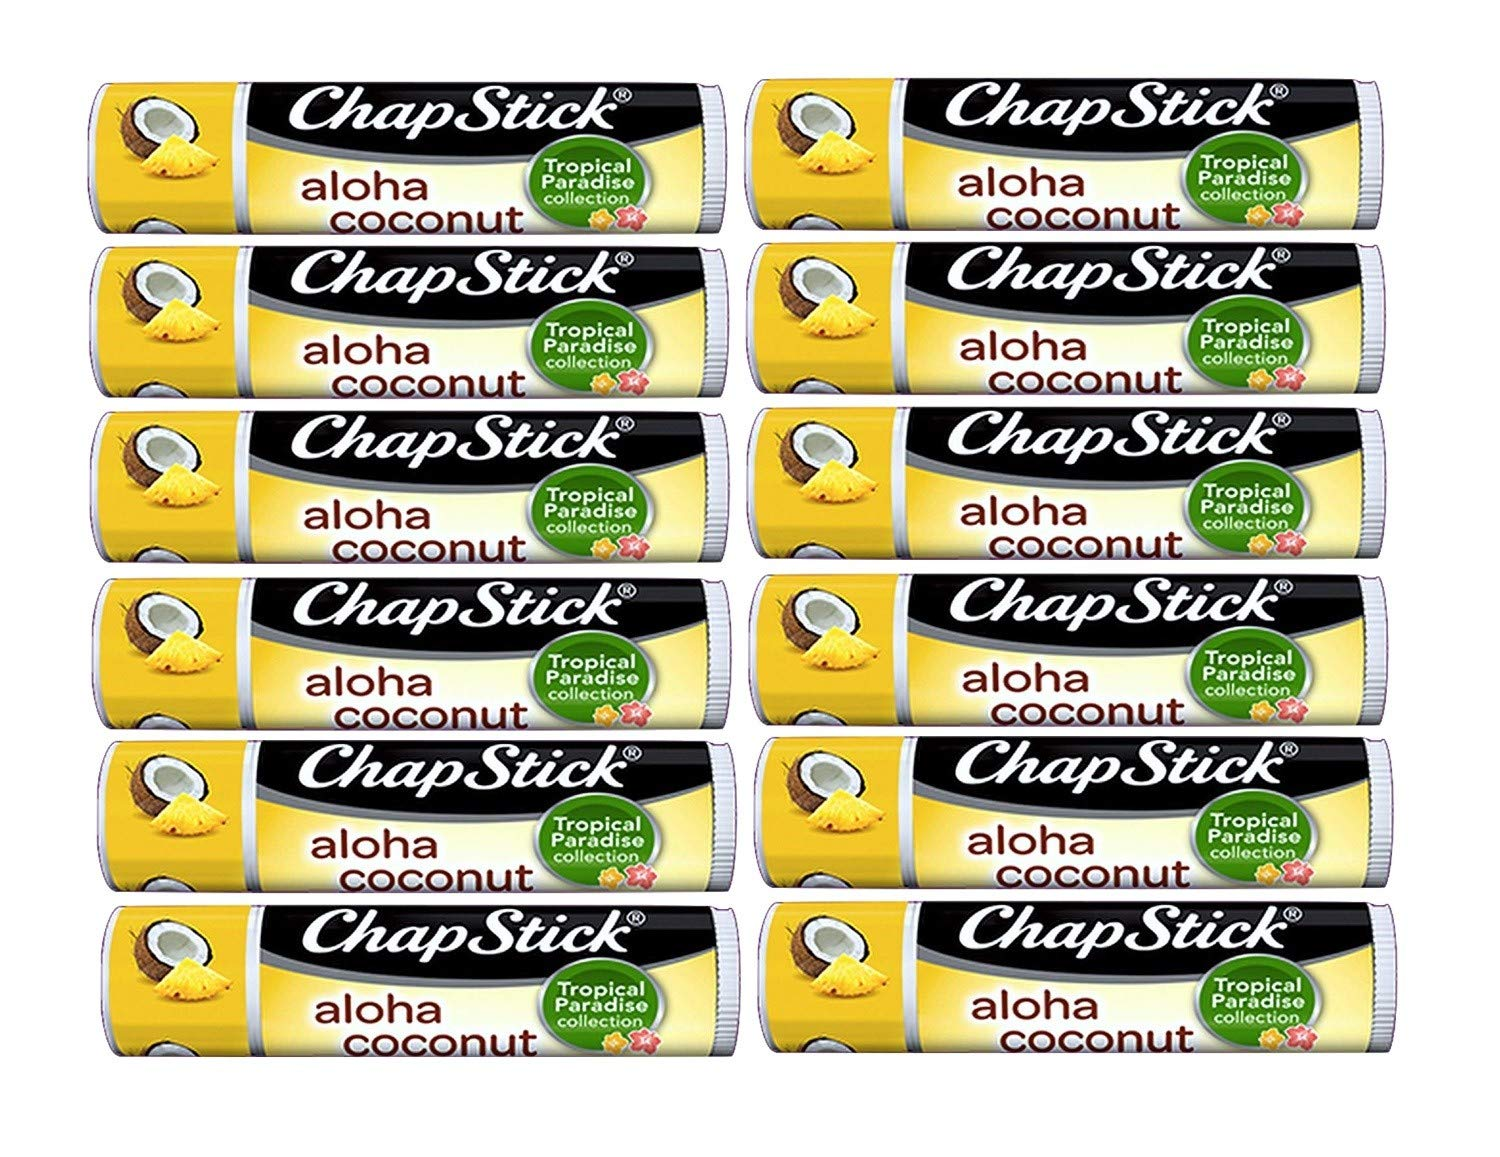 Chapstick Limited Edition Tropical Paradise Collection Aloha Coconut Flavored Skin Protectant Lip Balm Tube - Great for Moisturizing & Hydrating Chapped, Cracked, Dry Lips - 0.15oz Each, 12 Sticks